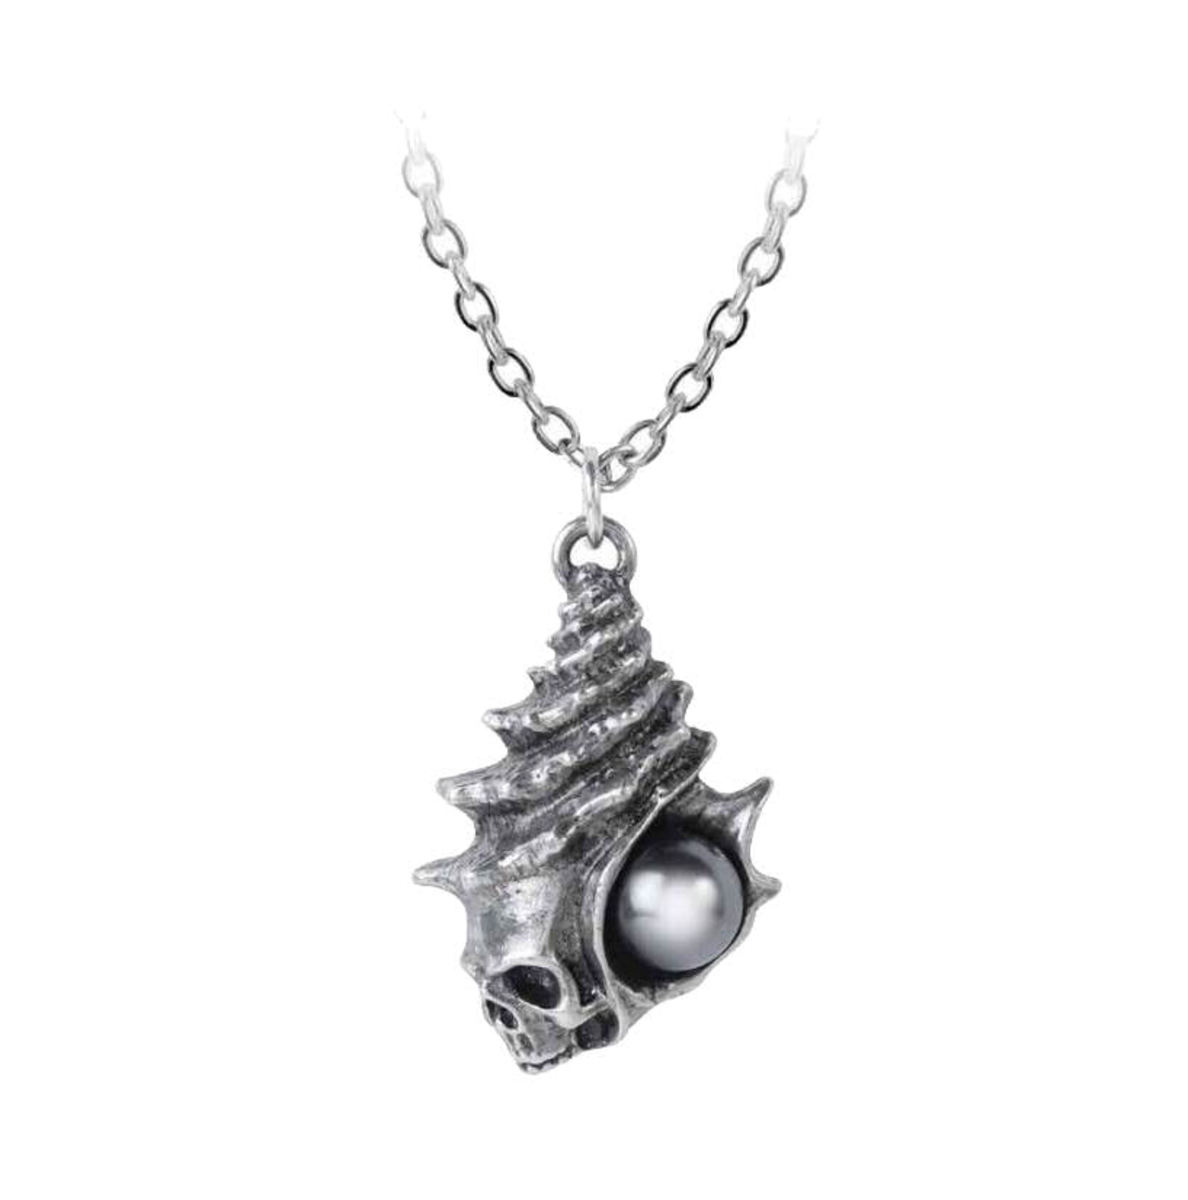 obojek ALCHEMY GOTHIC - The Black Pearl Of Plage Noire - P861